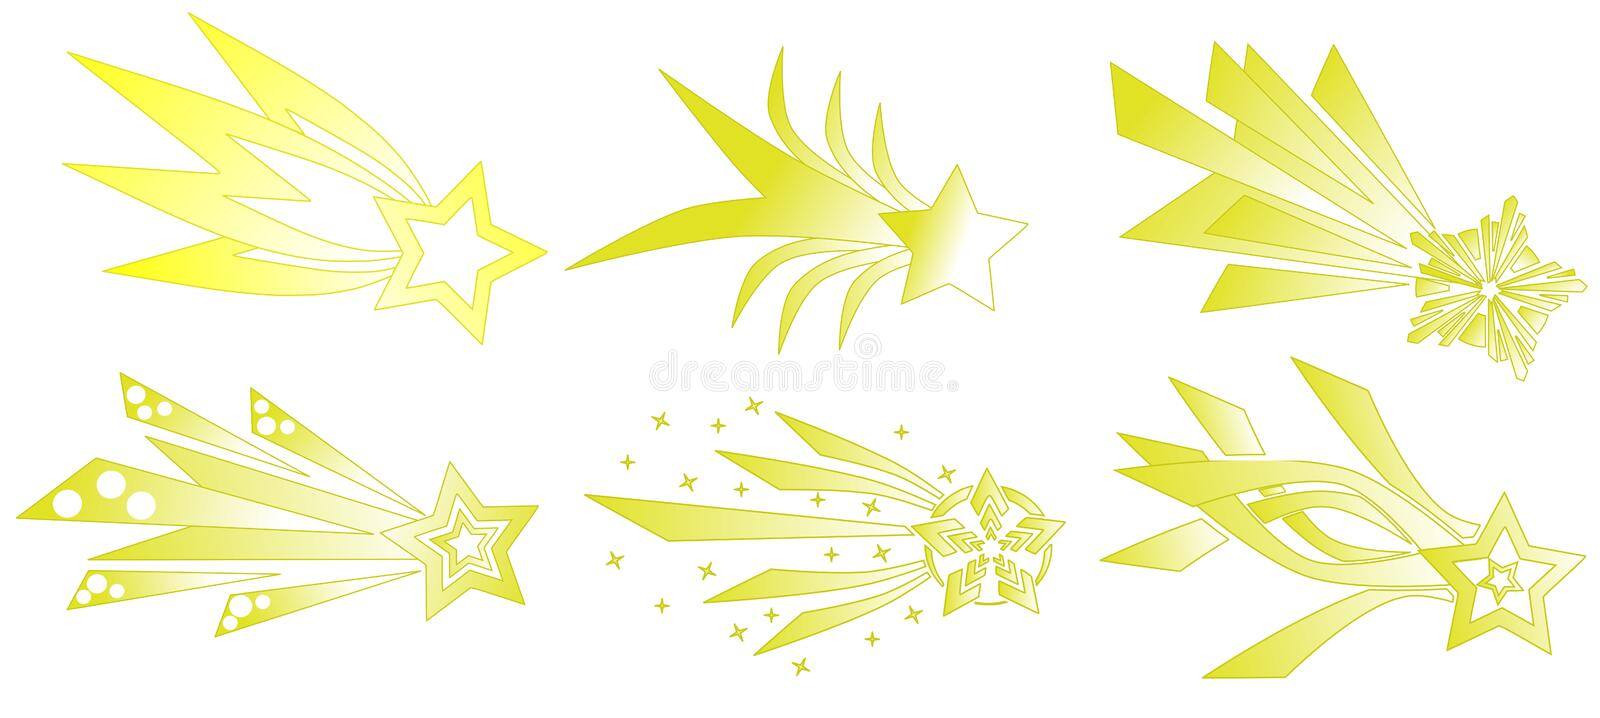 set of abstract Shooting stars isolated royalty free stock images